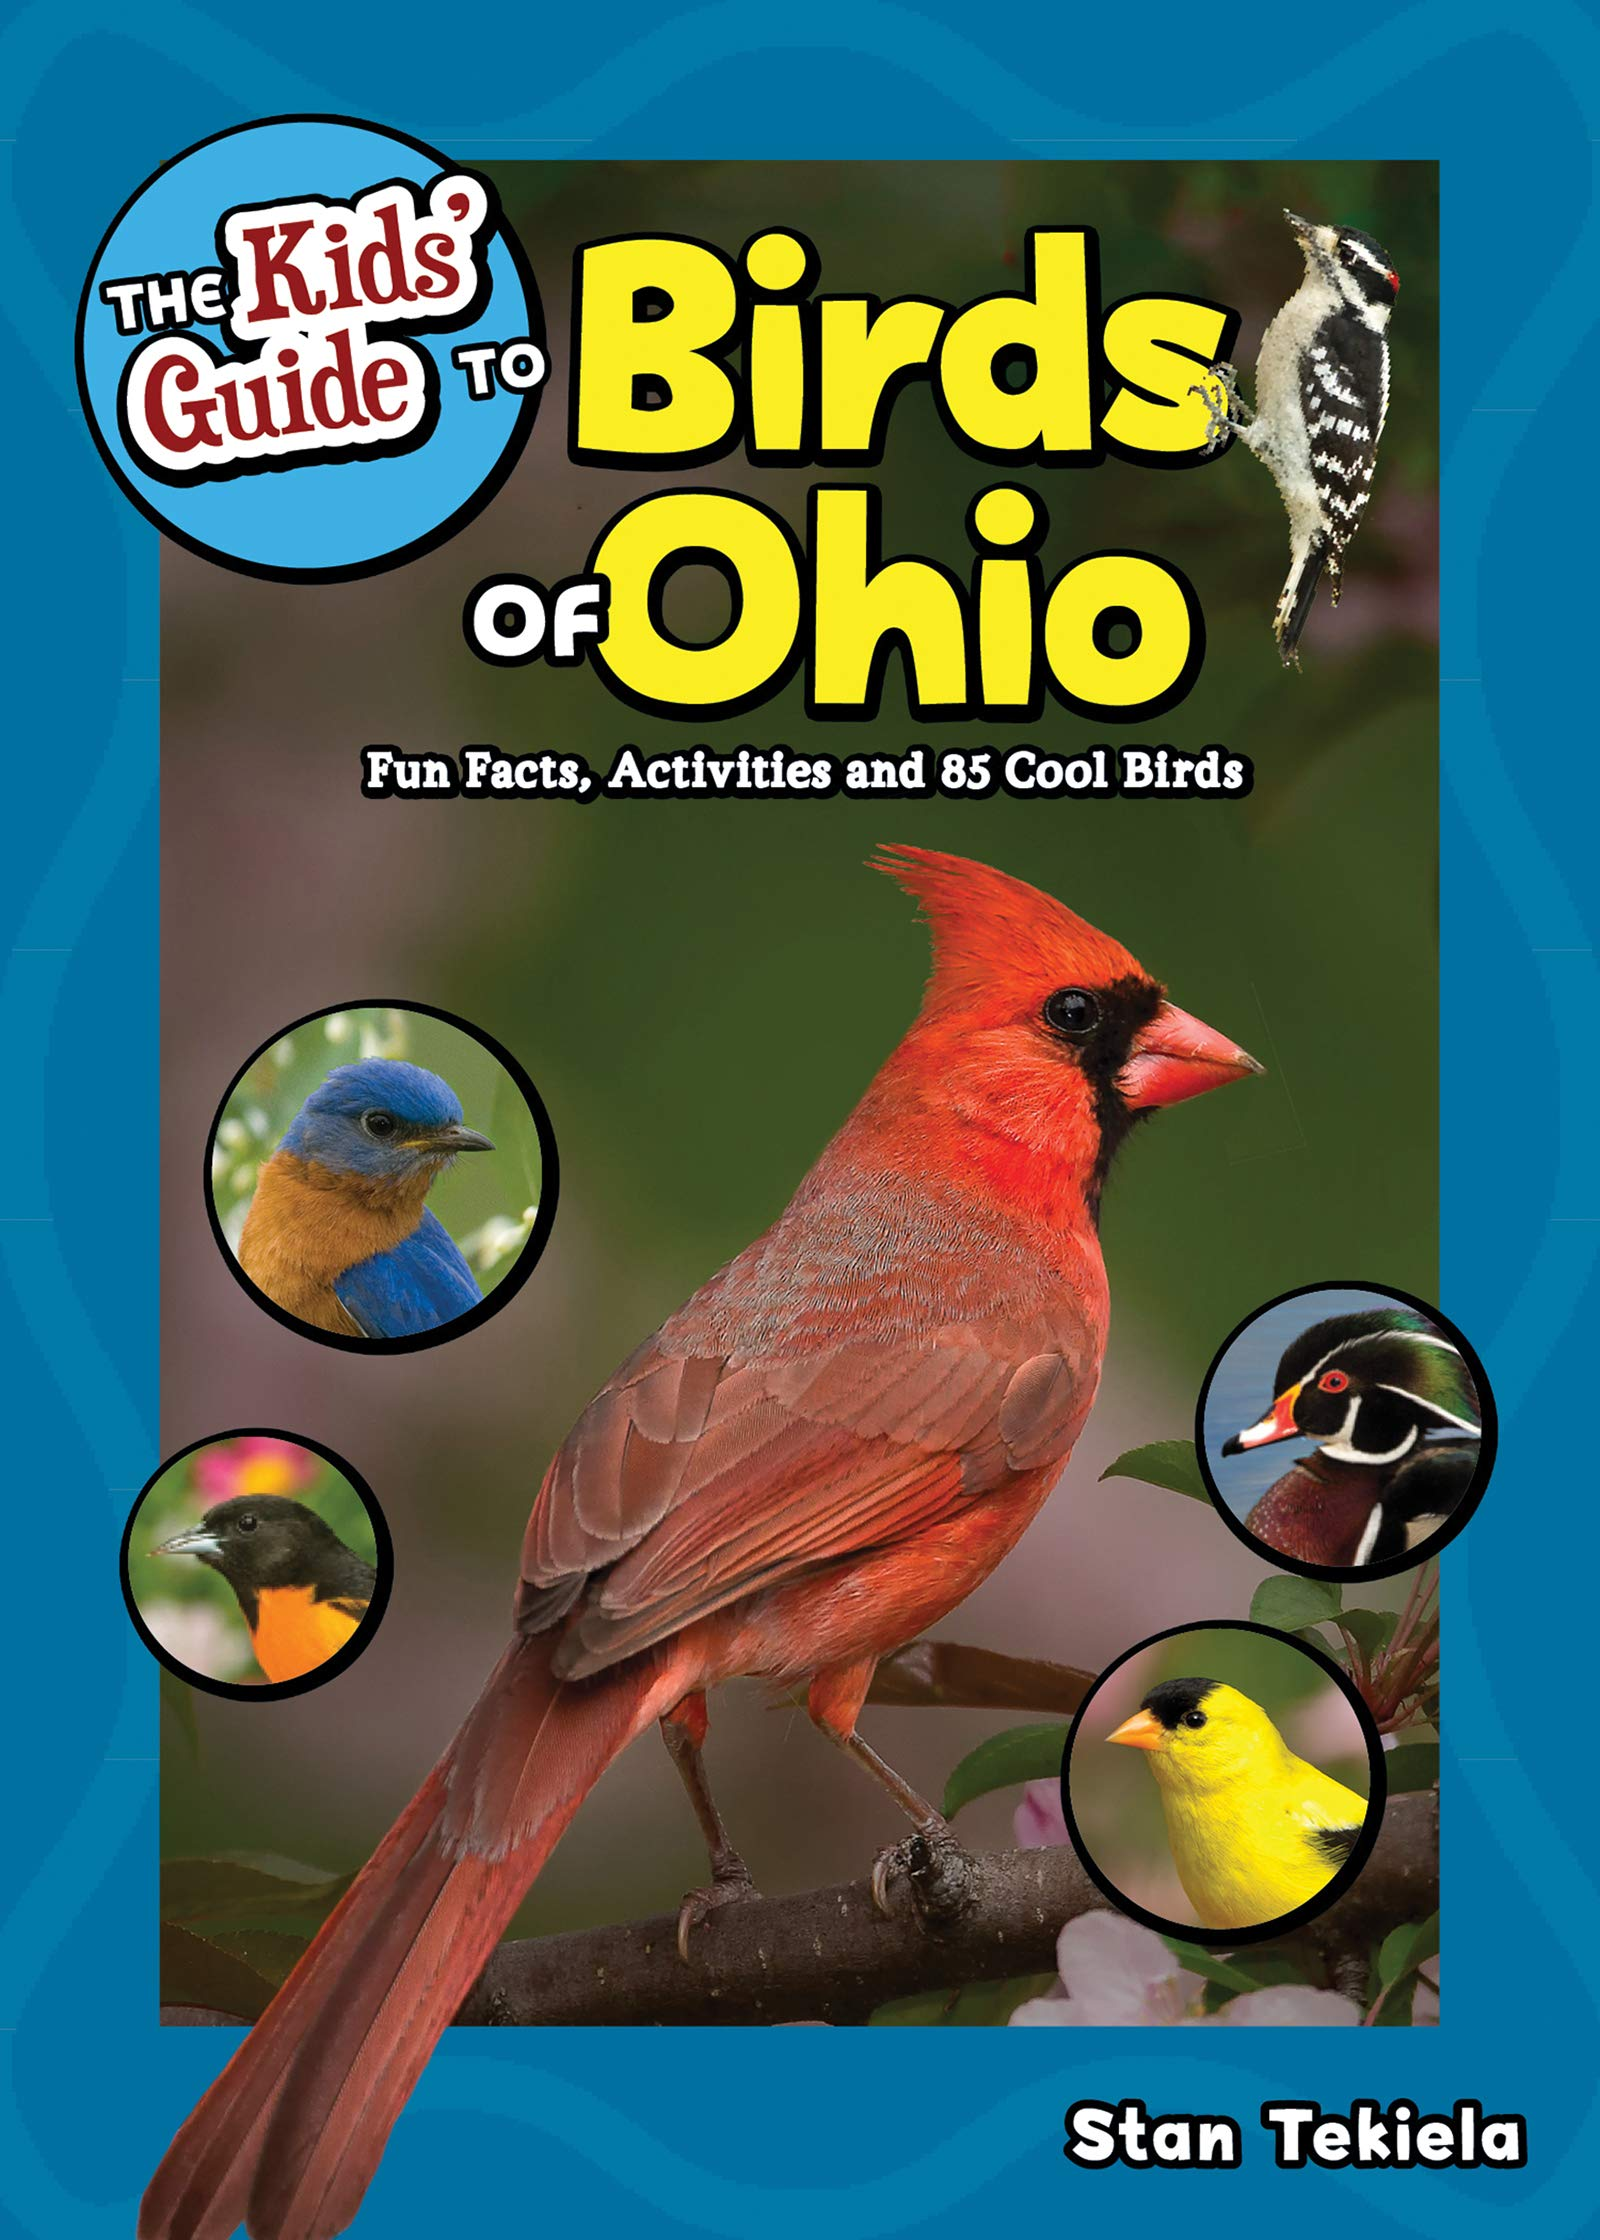 The Kids' Guide to Birds of Ohio: Fun Facts, Activities and